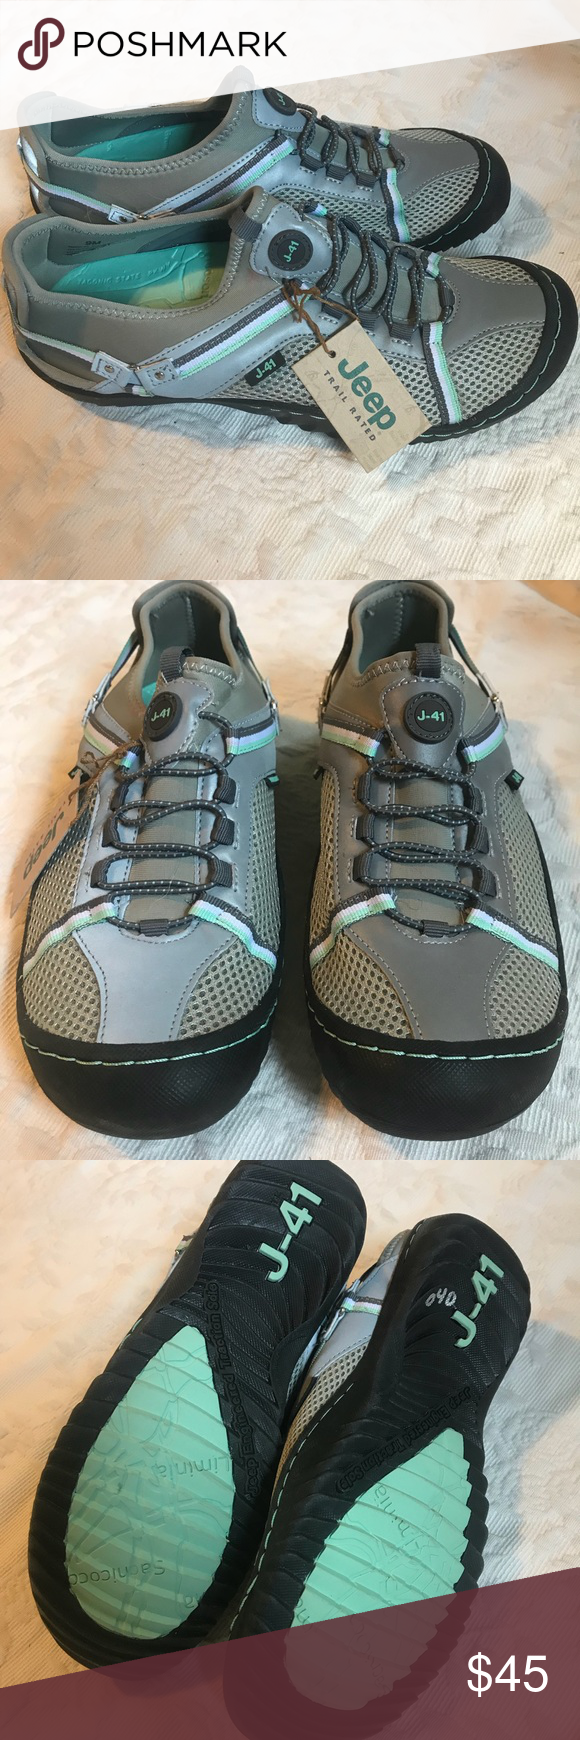 5ef4a6d054360a NWT Jeep J-41 Trail Rated Shoes These shoes are brand new and ready for the  trail